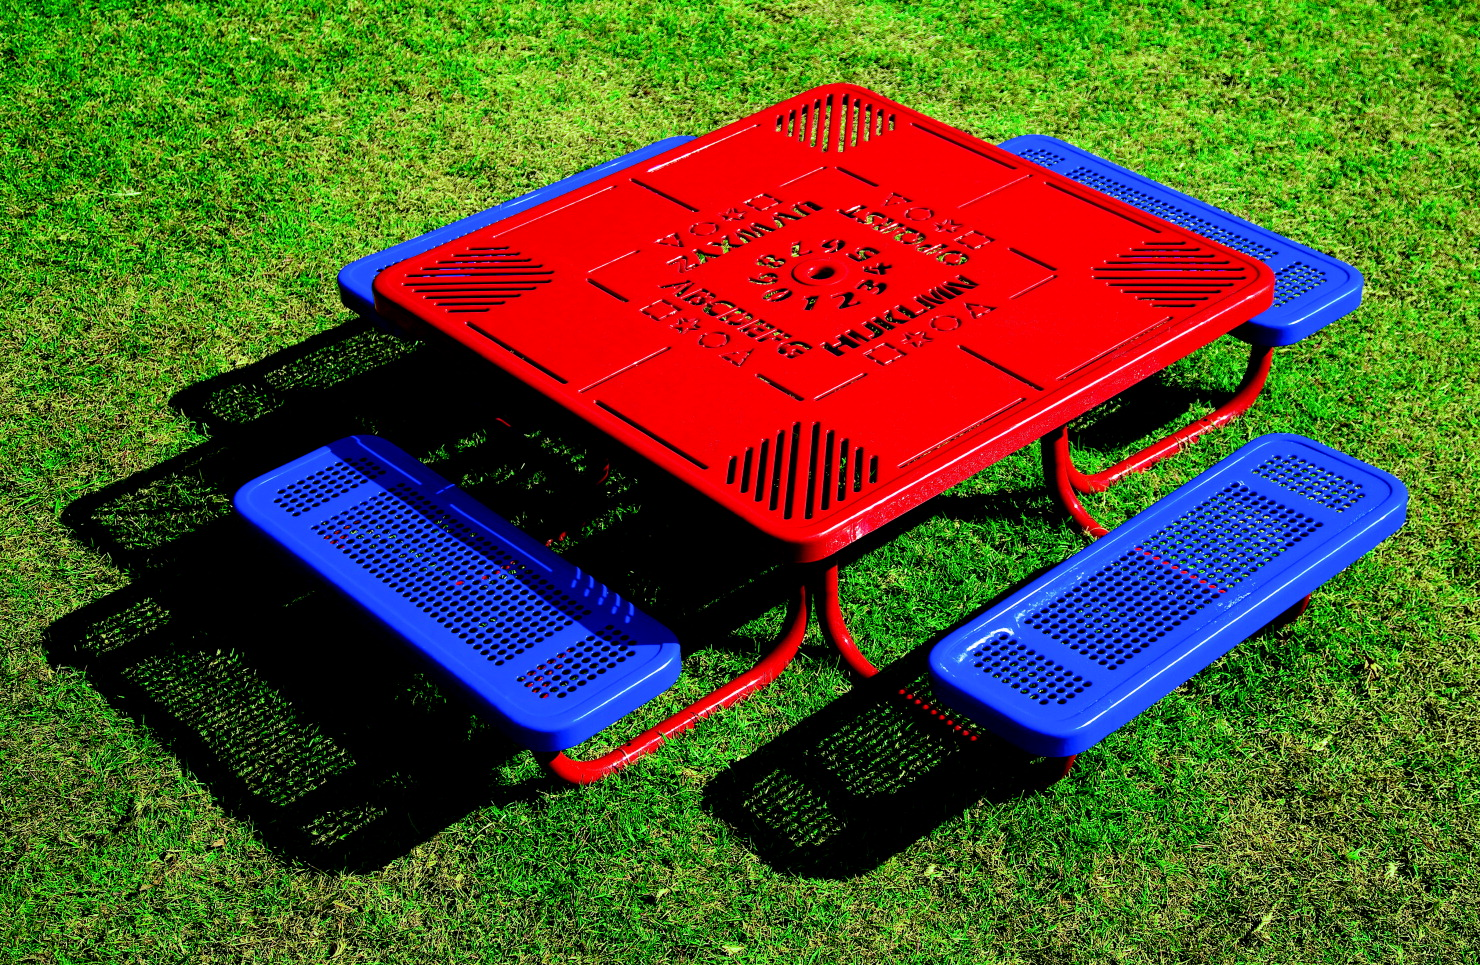 UltraSite Pre-School Square Learning Picnic Table, 78-11/16 x 78-11/16 x 20 Inches, Blue Seat, Red Frame